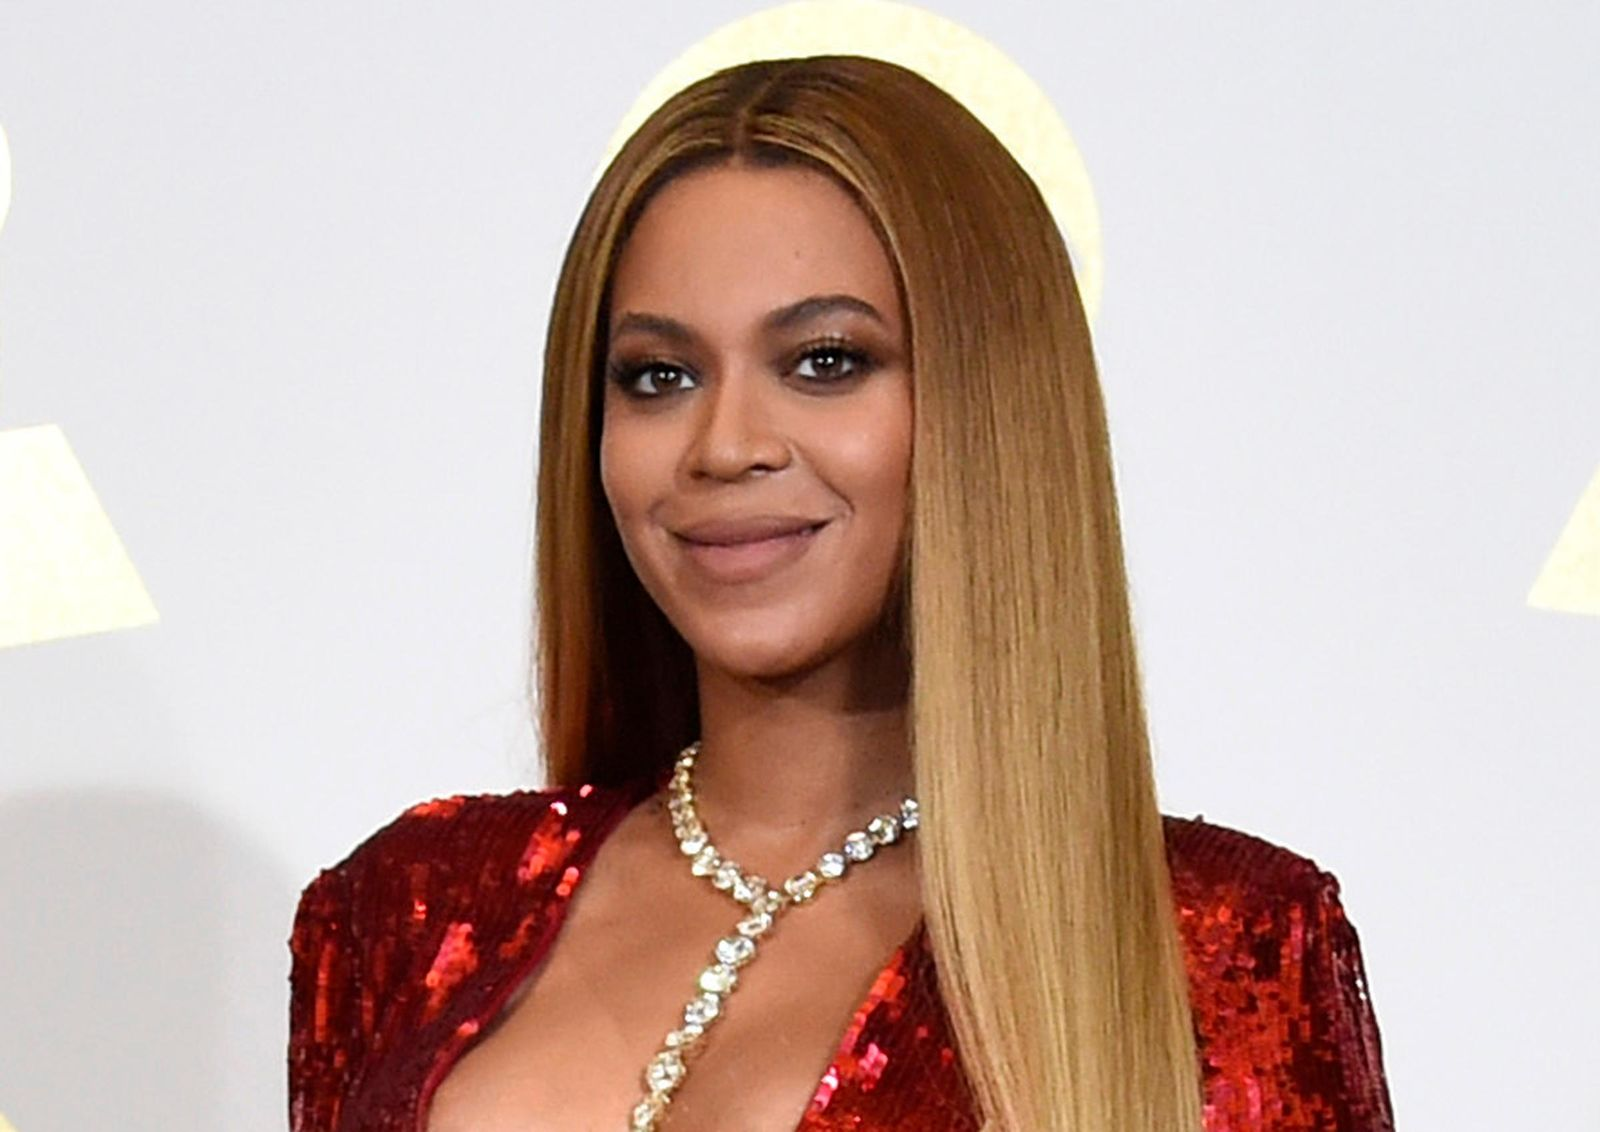 FILE - In this Feb. 12, 2017 file photo, Beyonce poses in the press room at the 59th annual Grammy Awards in Los Angeles.{ } (Photo by Chris Pizzello/Invision/AP, File)